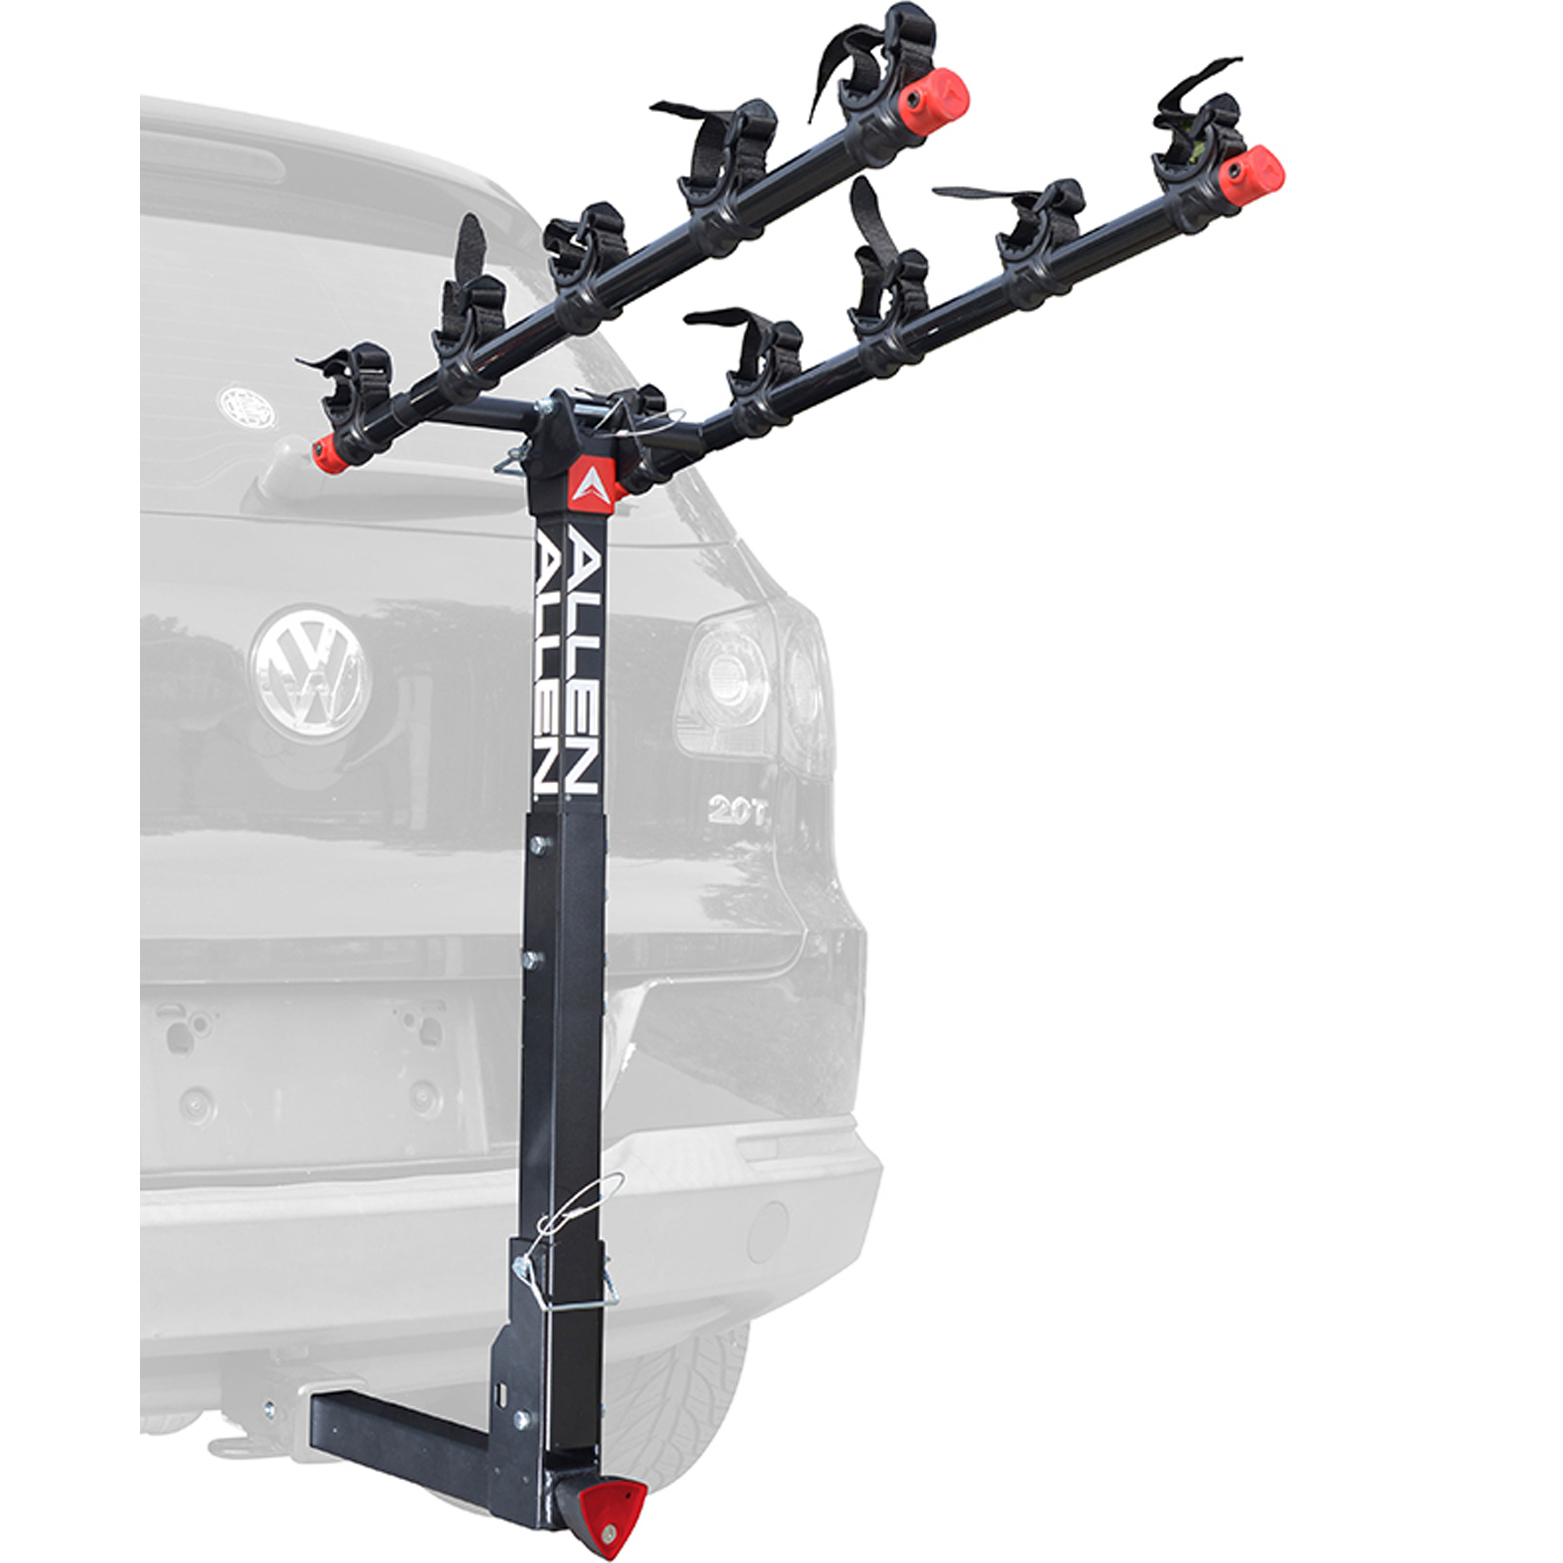 DELUXE QUICK INSTALL LOCKING 5-BIKE HITCH